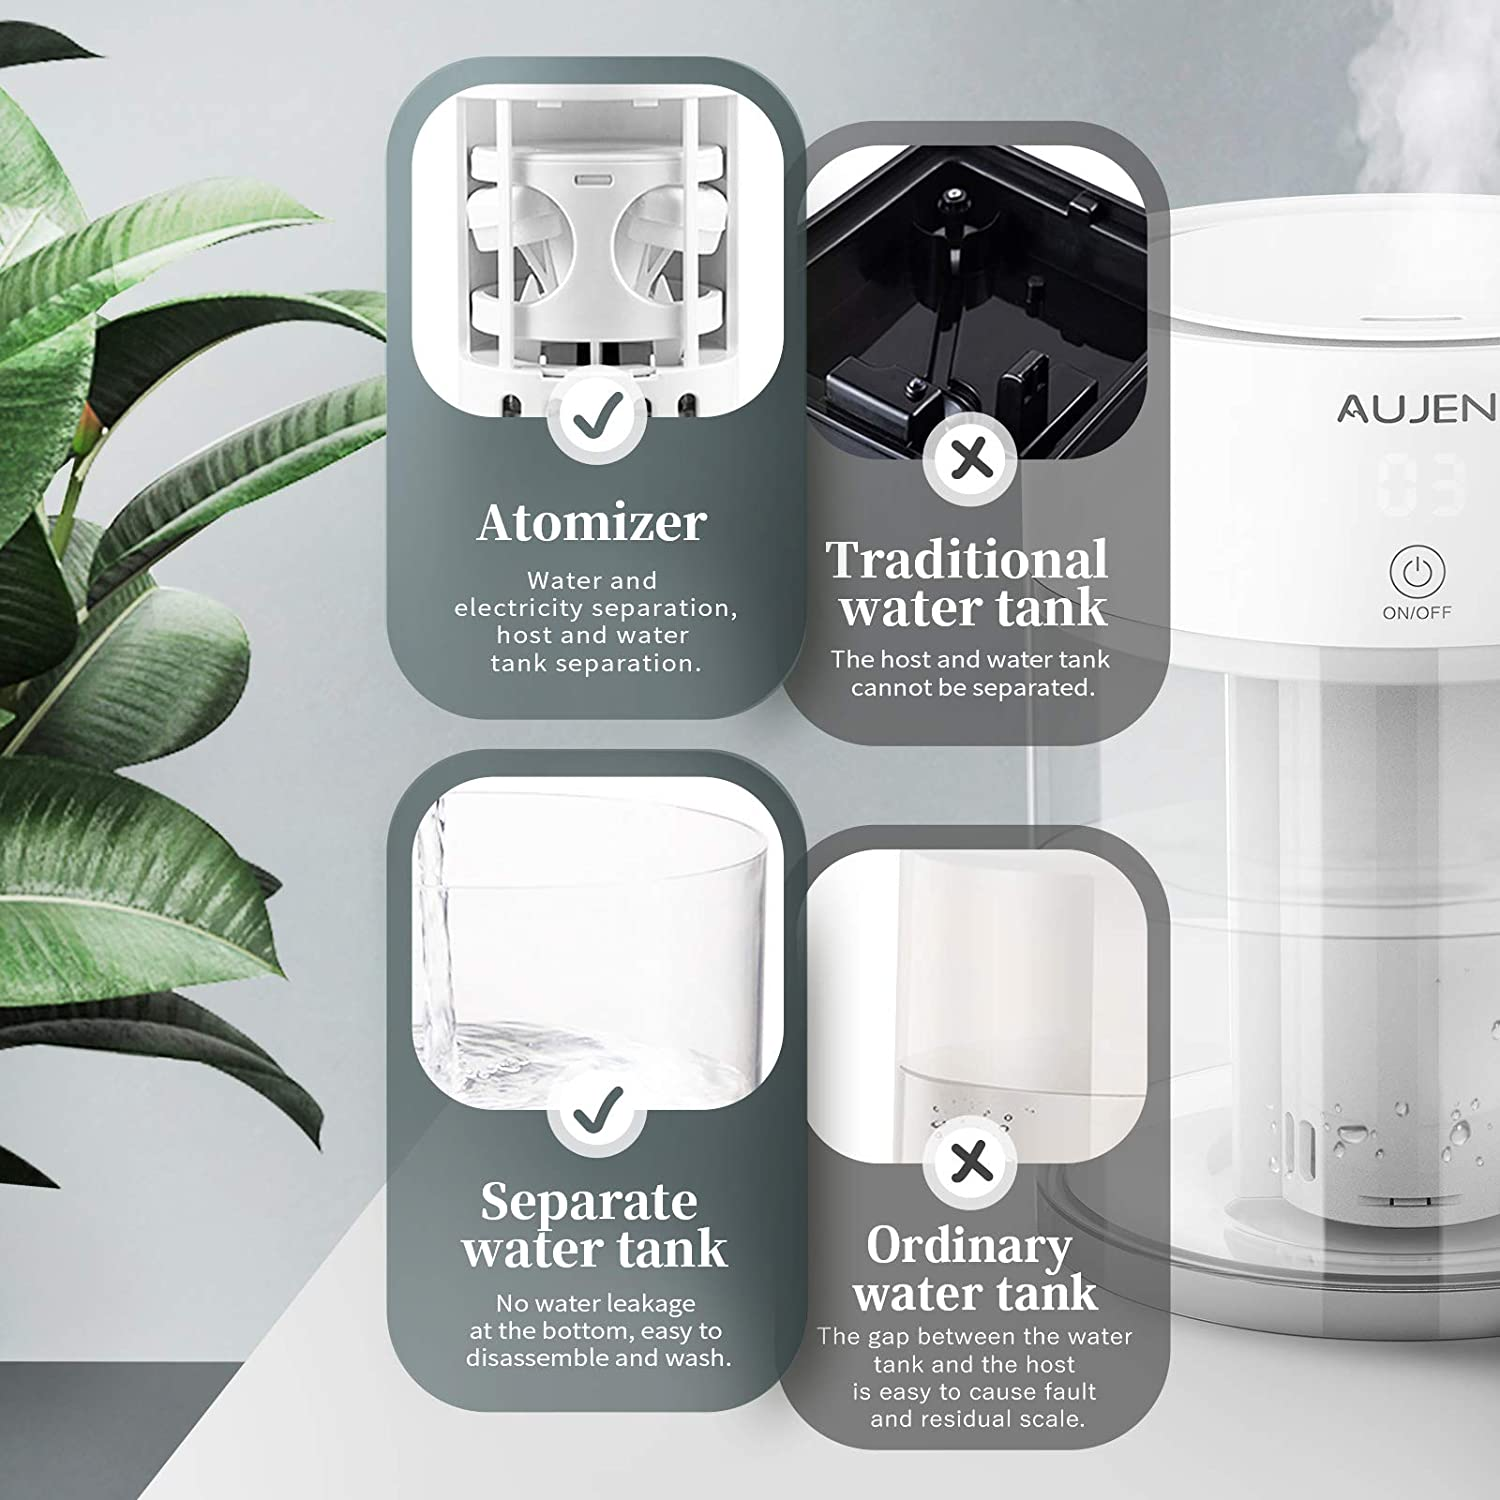 Aujen Humidifier with Night Light Quiet Humidifier for Babies 3L Cool Mist Humidifier for Bedroom Ultrasonic Humidifier for Large Room Air Humidifier with Adjustable Mist Level Lasts Up to 15 Hours